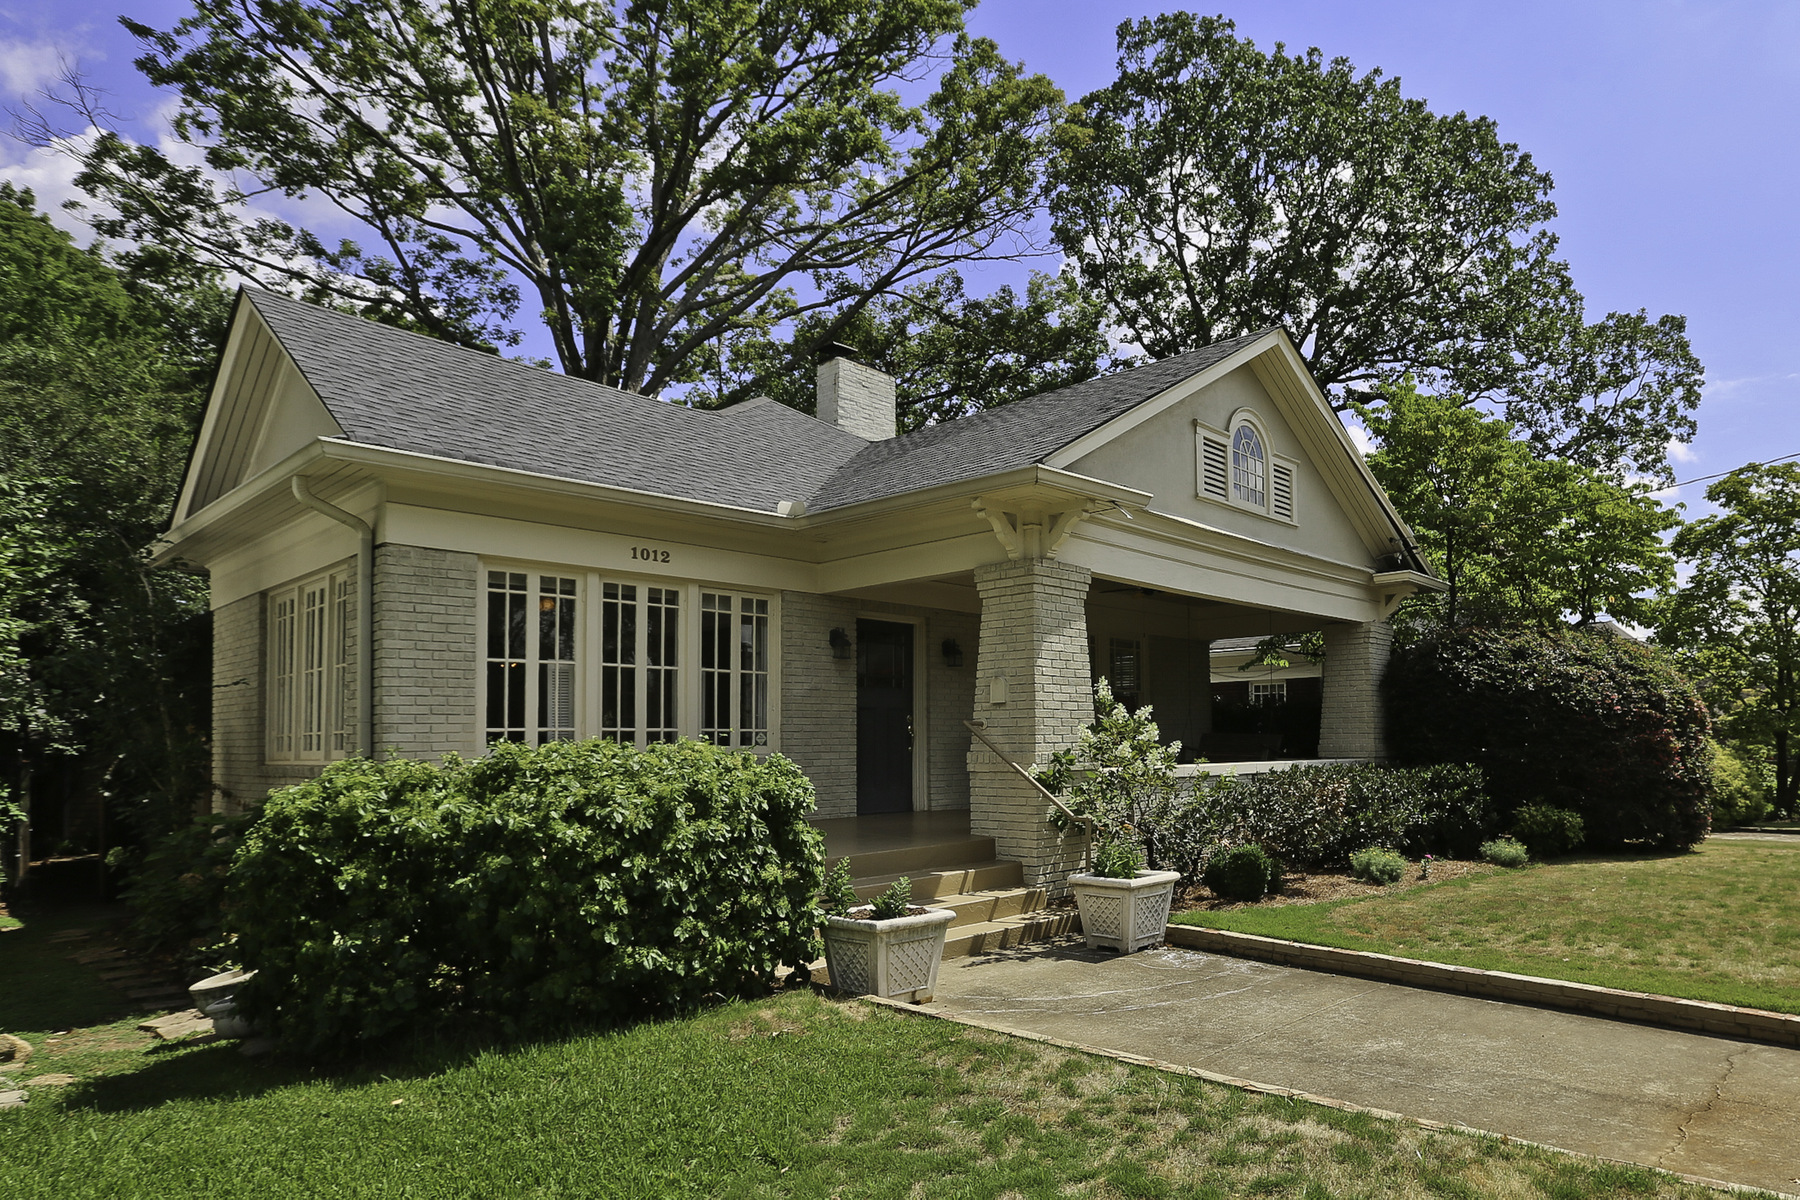 단독 가정 주택 용 매매 에 Charming Virginia Highland Bungalow 1012 Bellevue Drive NE Virginia Highland, Atlanta, 조지아, 30306 미국